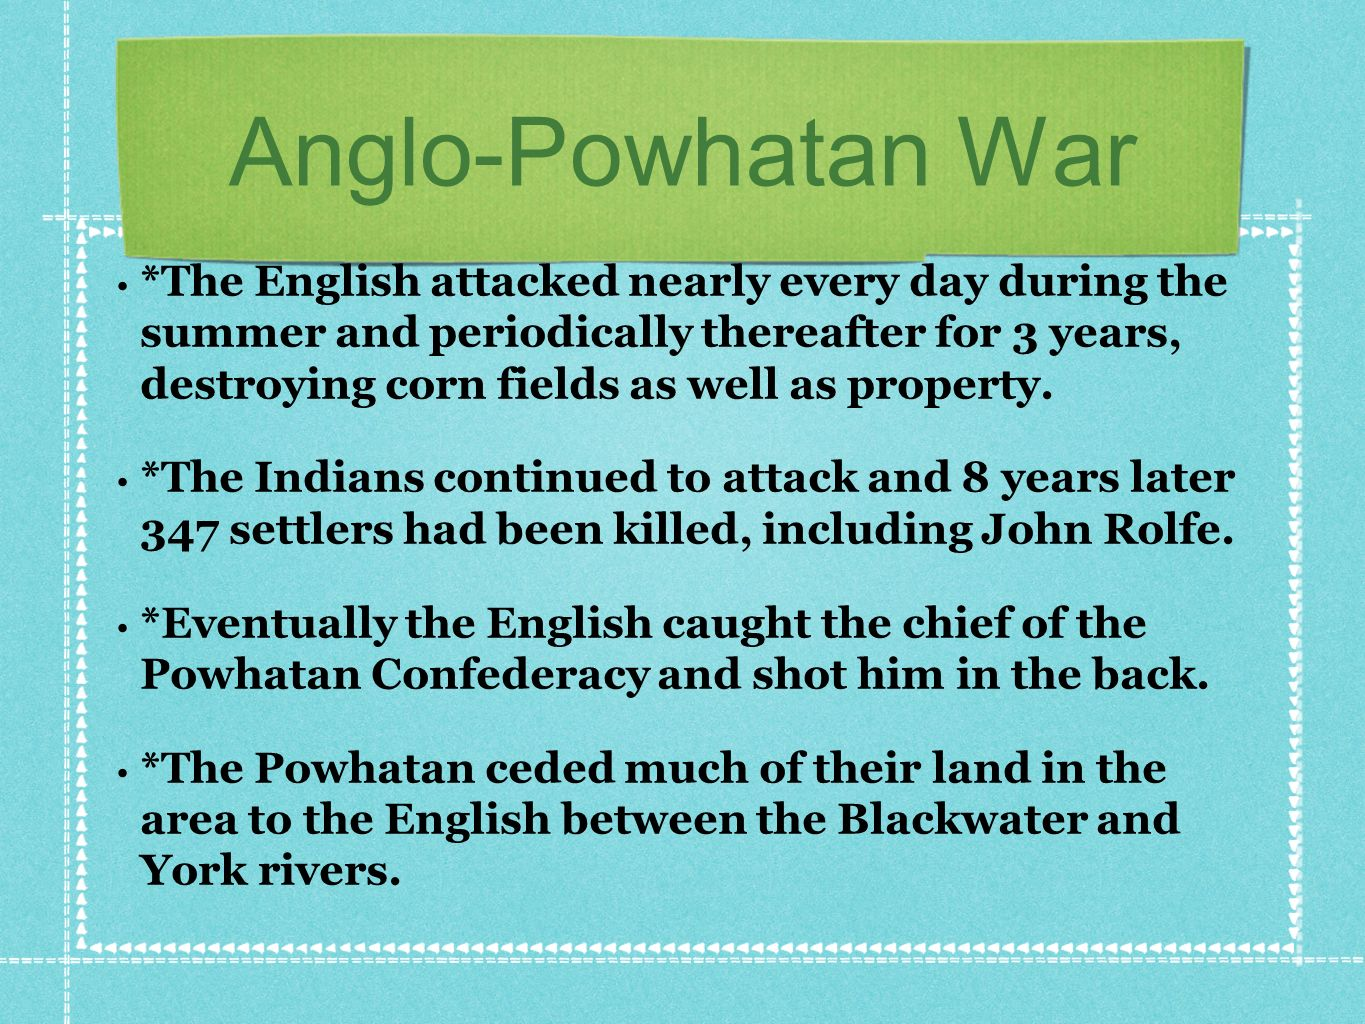 Anglo-Powhatan War *The English attacked nearly every day during the summer and periodically thereafter for 3 years, destroying corn fields as well as